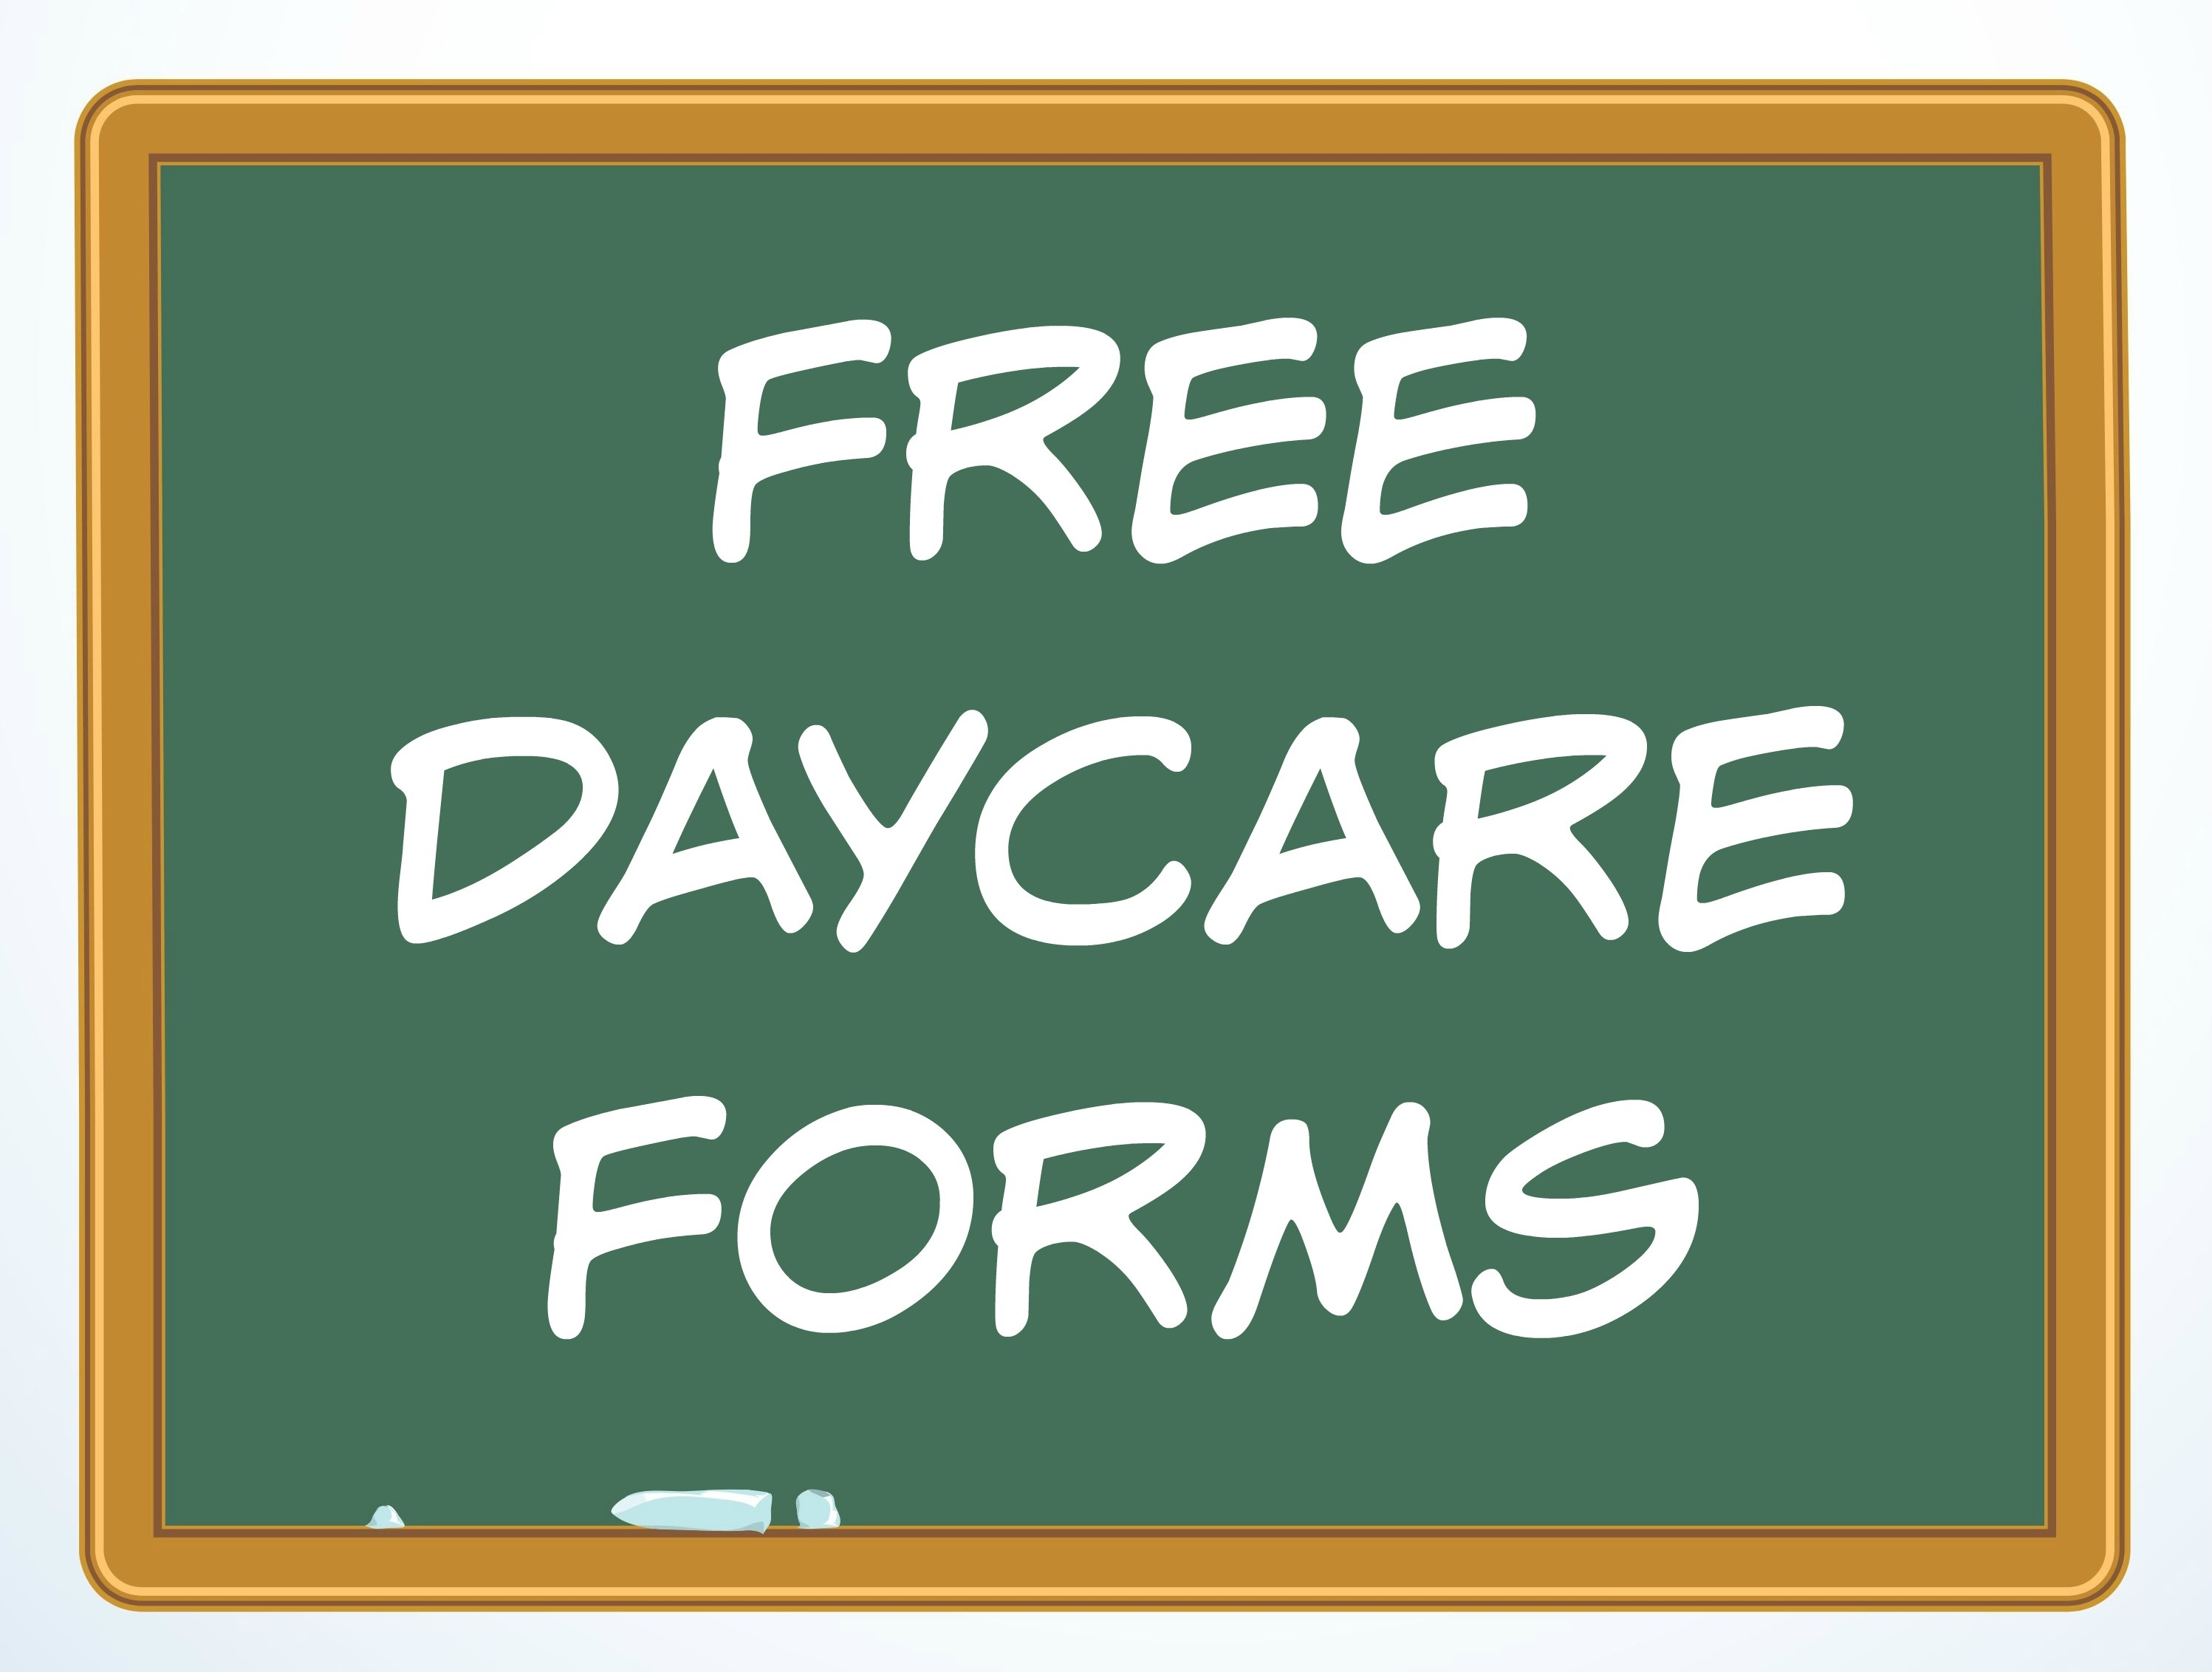 Free Daycare Forms And Sample Documents - Free Printable Daycare Forms For Parents